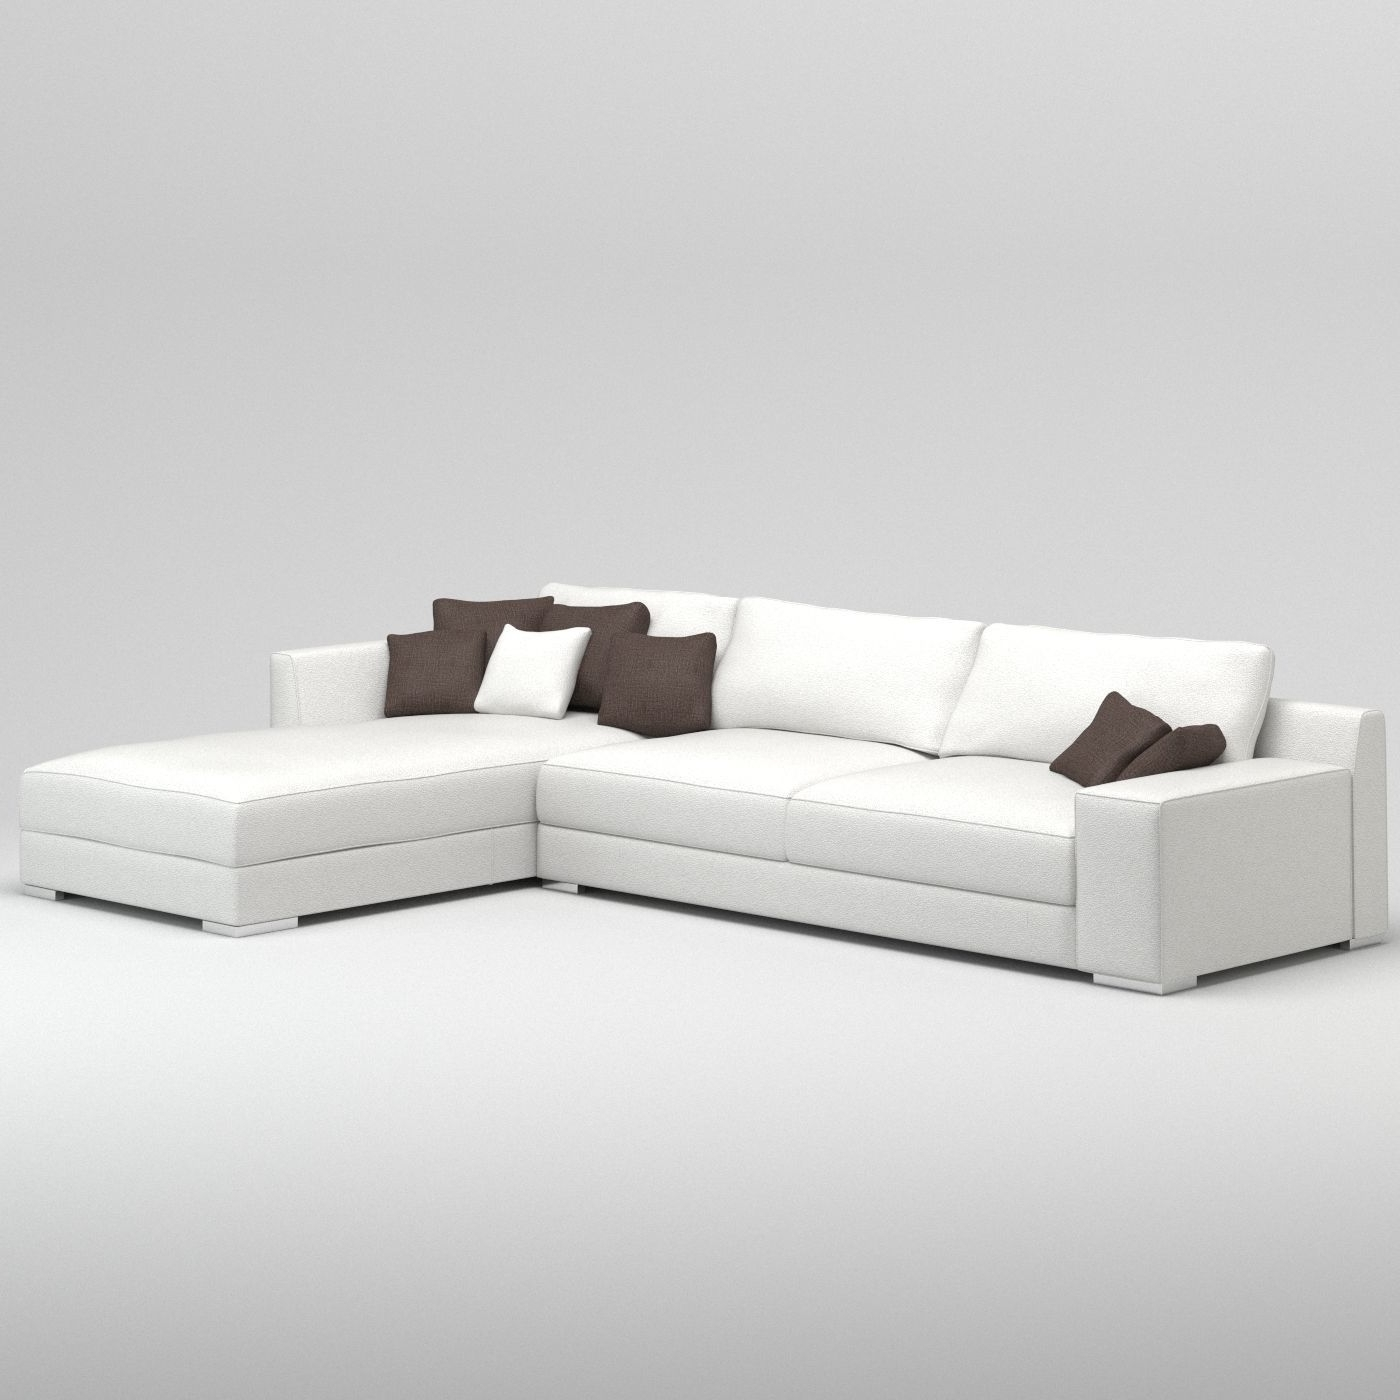 Greenville Sc Sectional Sofas With Regard To Most Popular Furniture : Couchtuner Queen Sugar Sectional Sofa Greenville Sc (View 12 of 20)